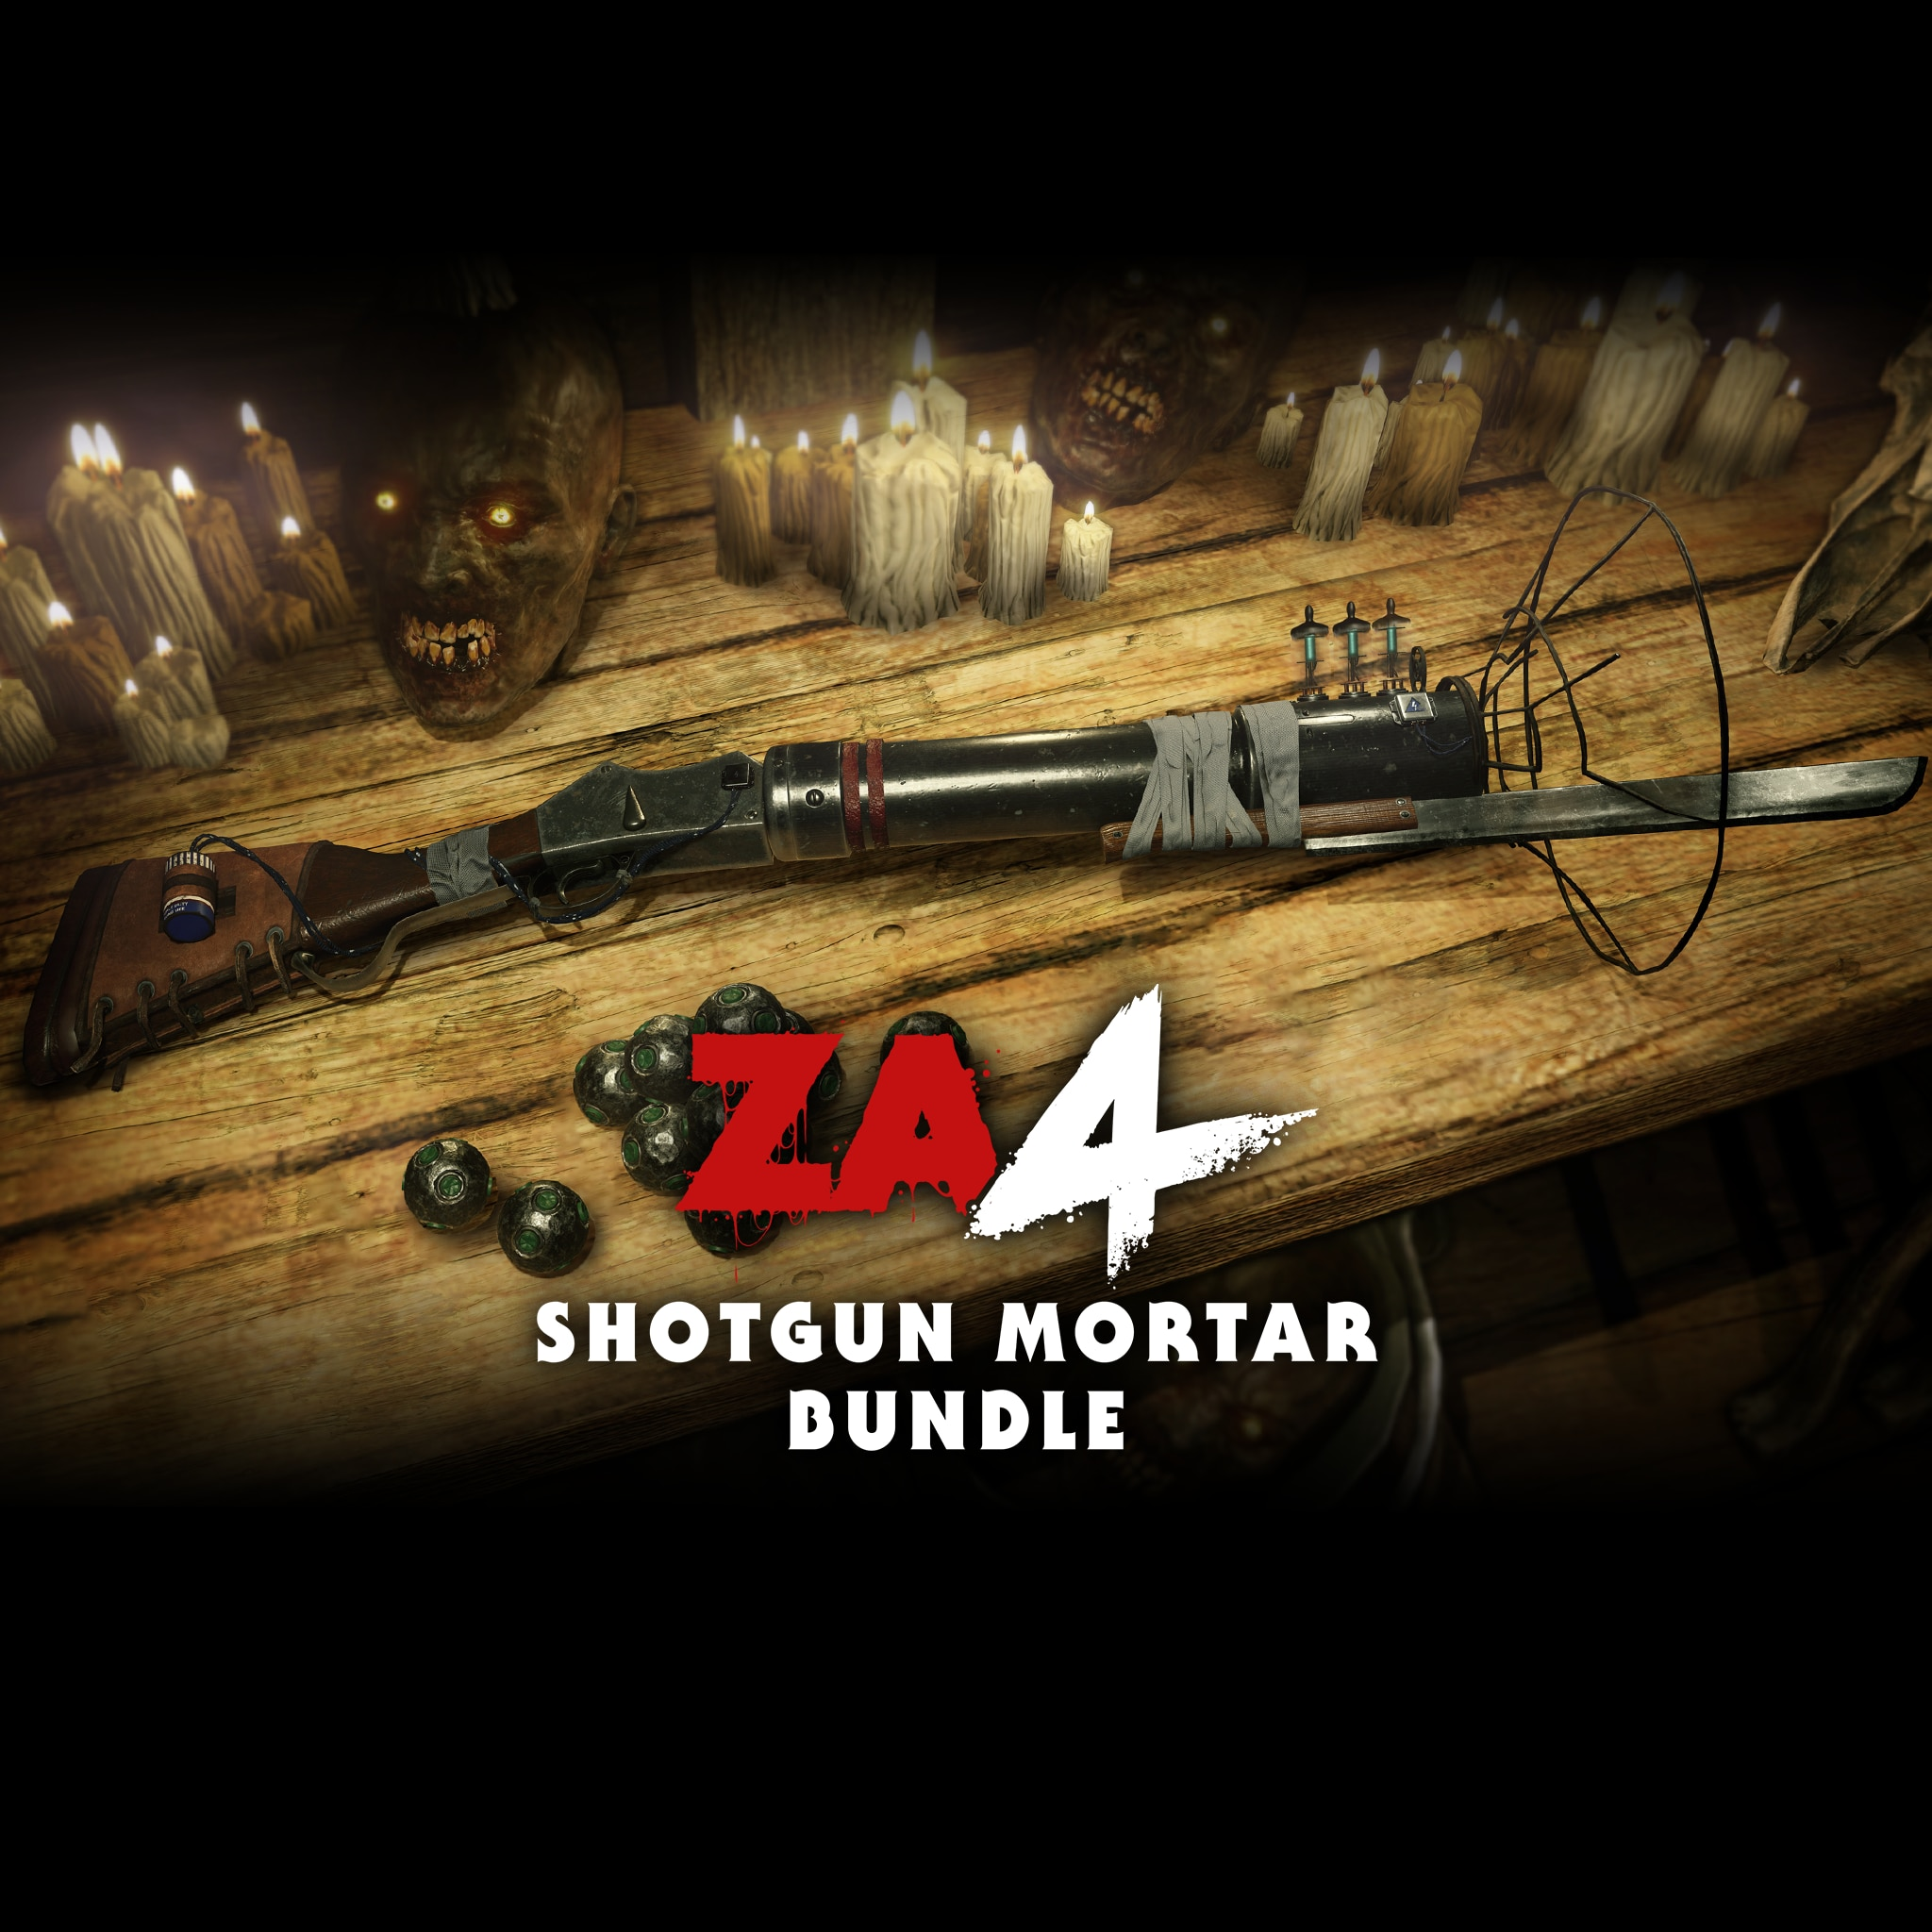 Zombie Army 4: Mortar Shotgun  (Add-On)